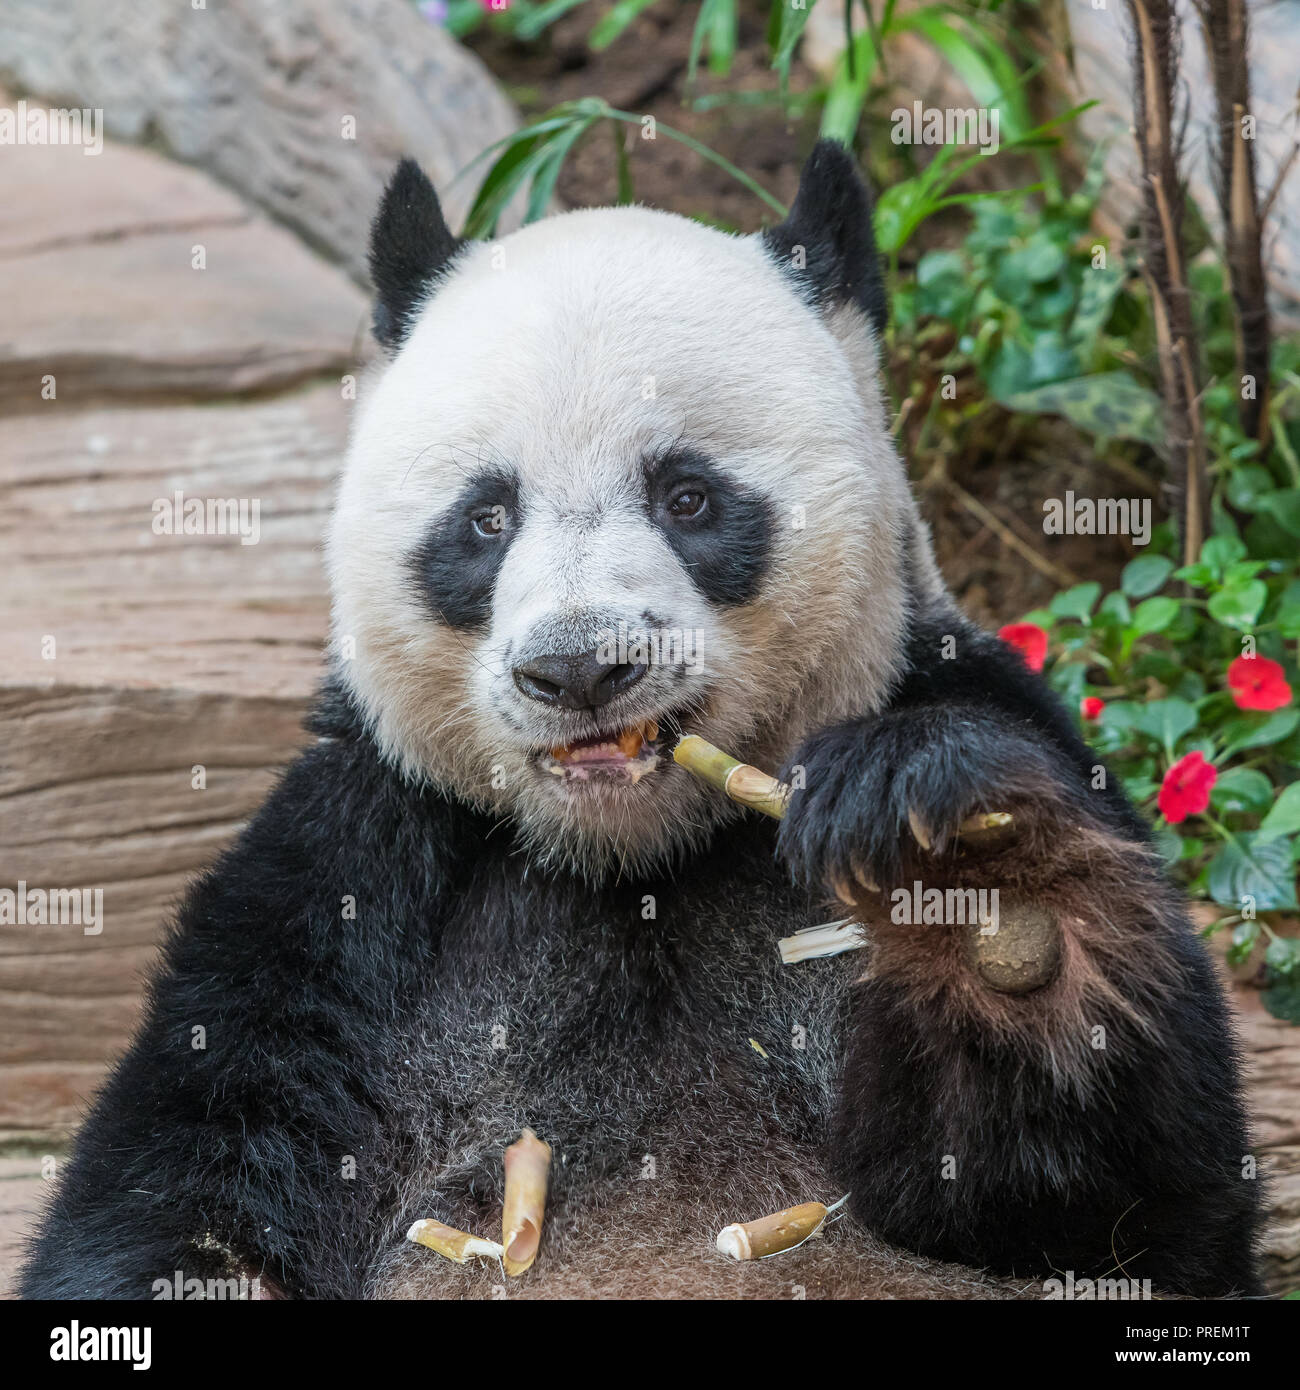 A male giant panda bear enjoy his breakfast of well selected young bamboo shoots and bamboo sticks with cute different eating gestures. - Stock Image